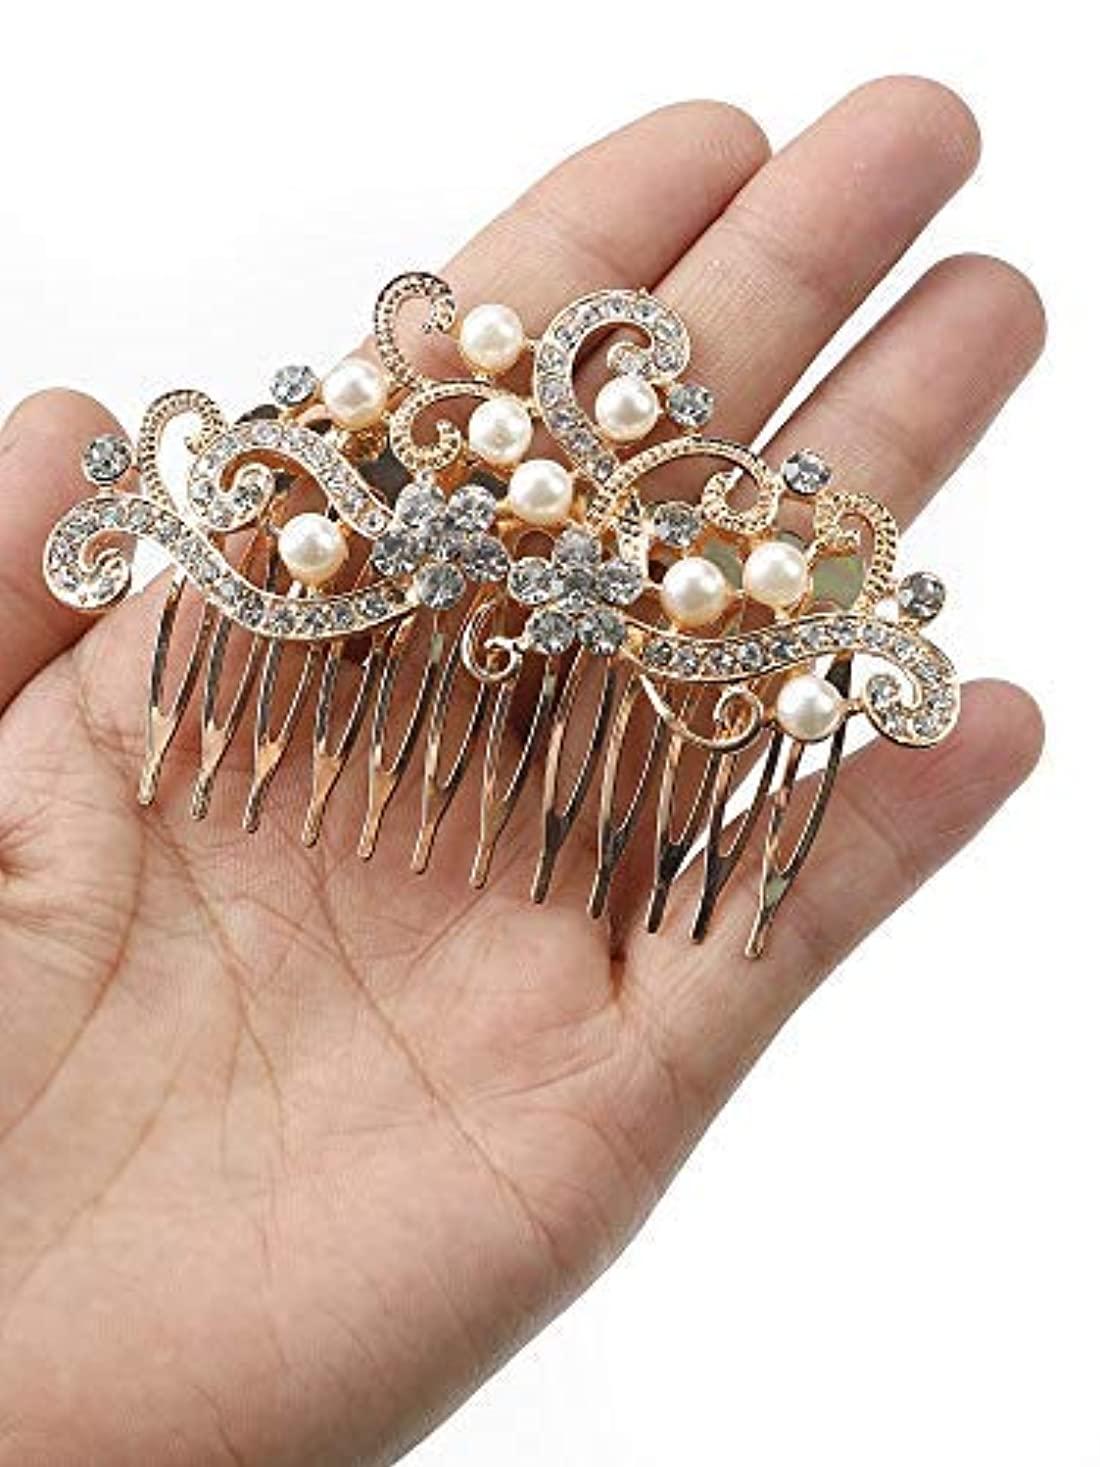 ゲインセイミリメートル接地FXmimior Bridal Women Vintage Wedding Party Crystal Rhinestone Vintage Hair Comb Hair Accessories (GOLD) [並行輸入品]